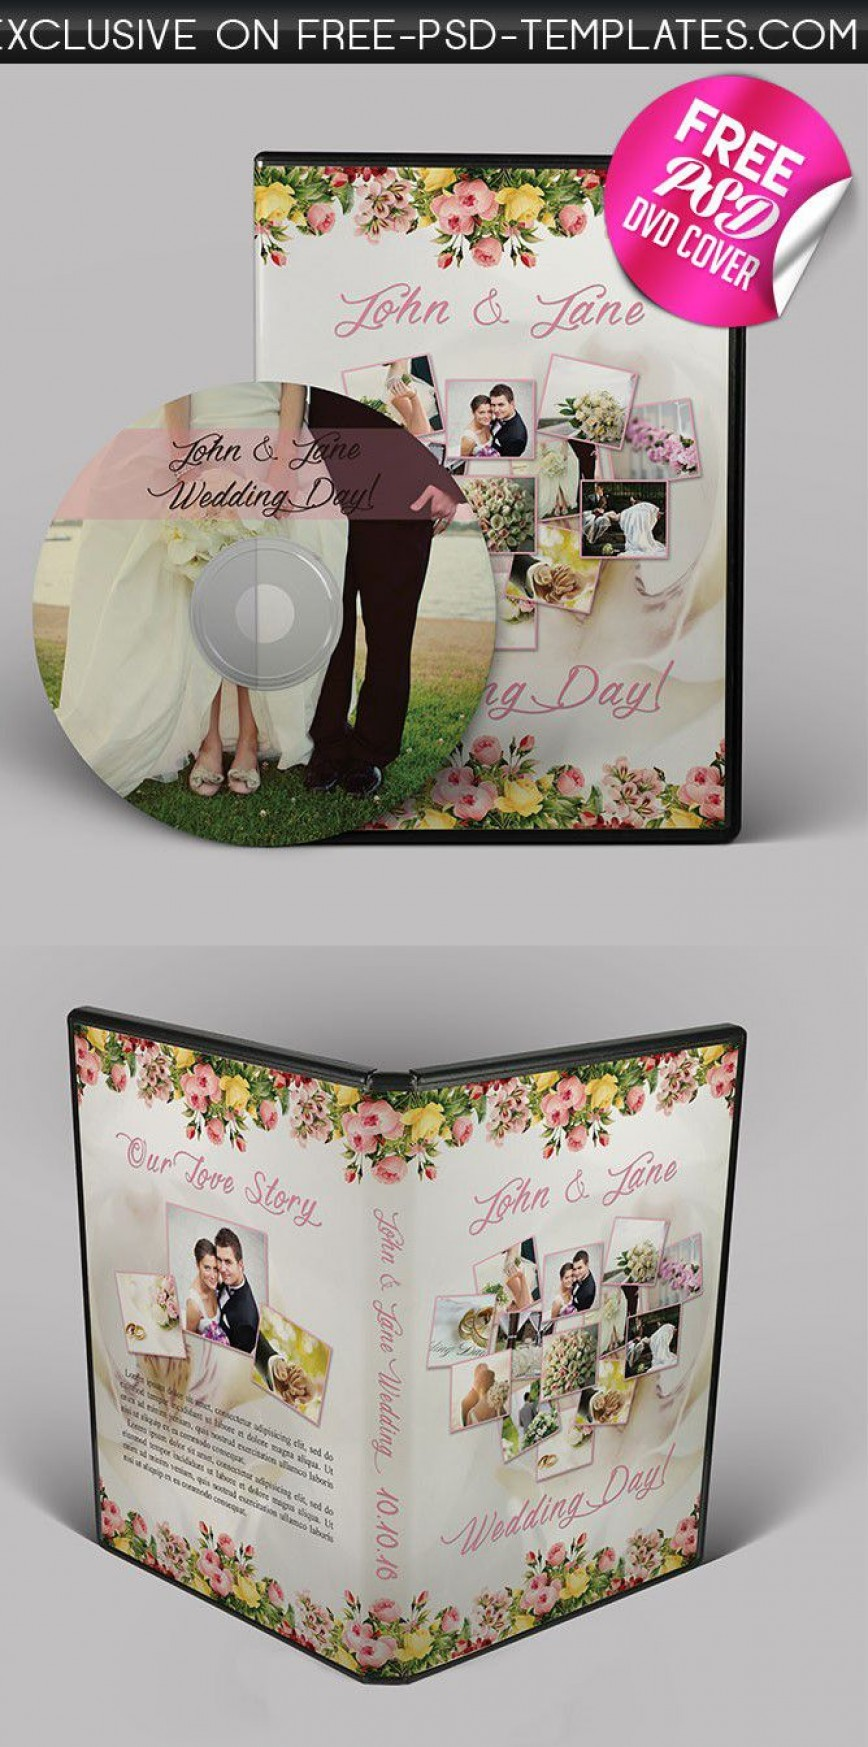 001 Dreaded Wedding Cd Cover Design Template Free Download High Definition 868